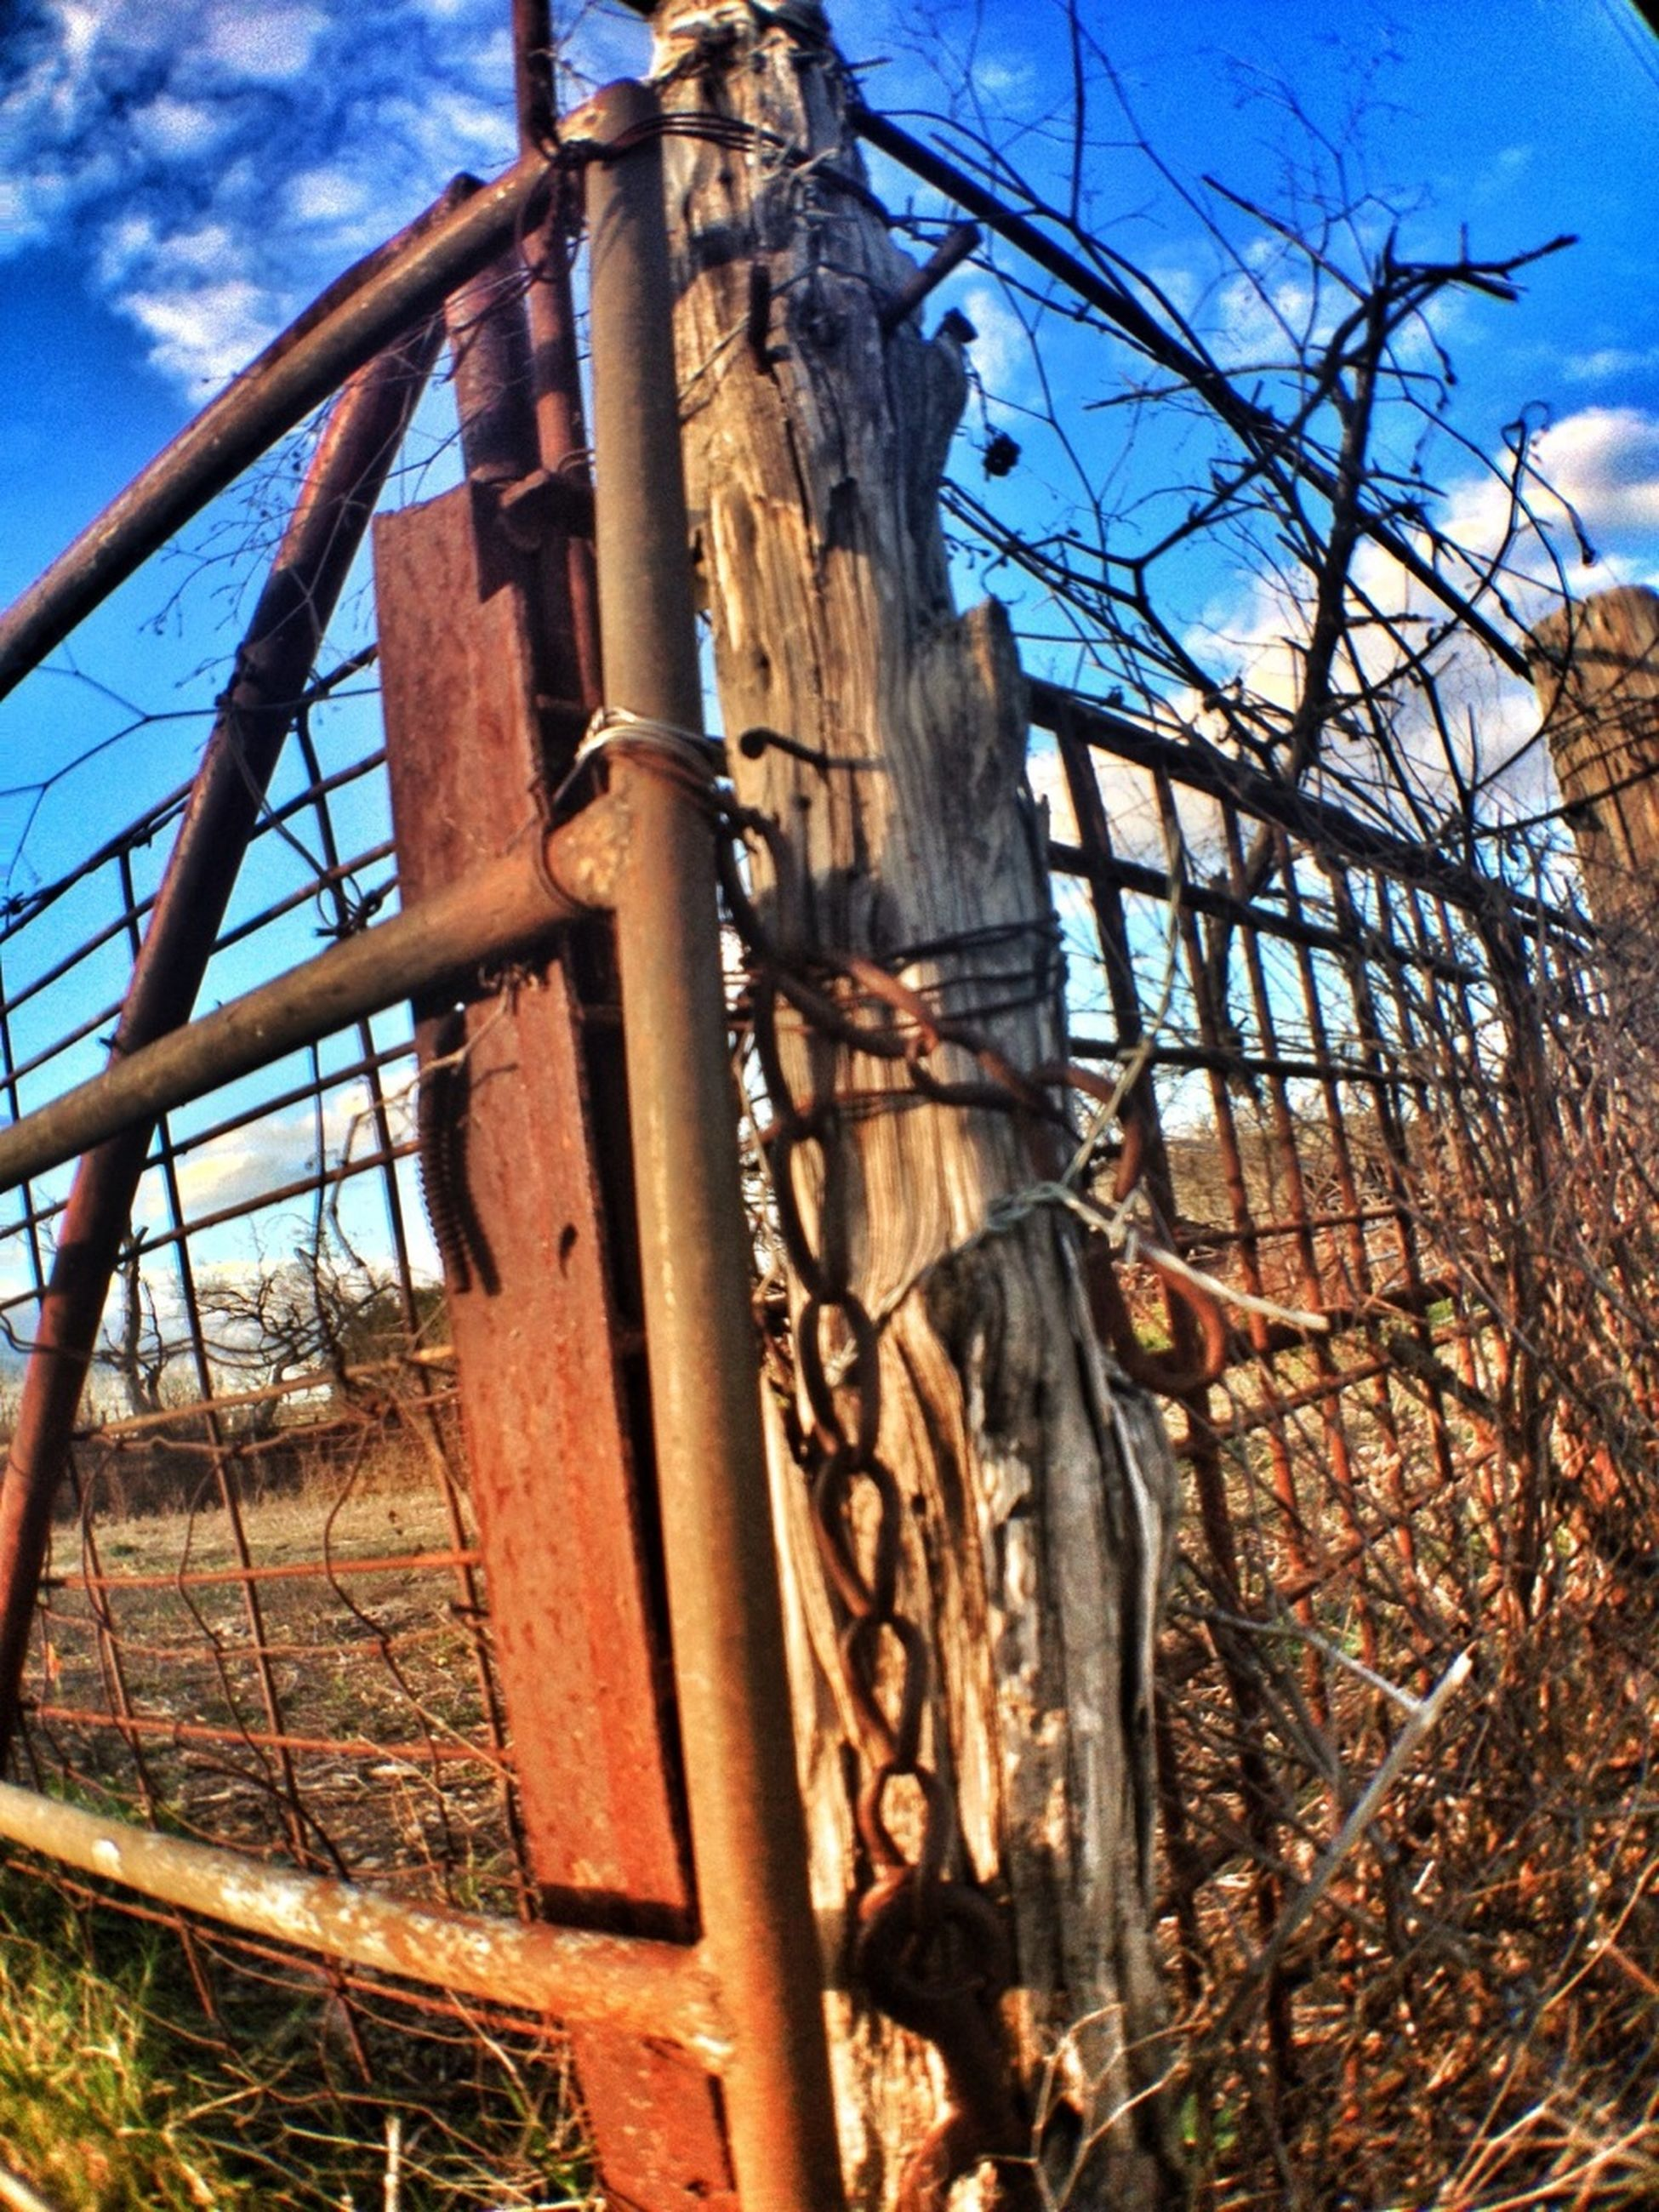 built structure, architecture, low angle view, sky, abandoned, building exterior, damaged, bare tree, old, metal, run-down, obsolete, deterioration, weathered, blue, fence, tree, rusty, day, outdoors